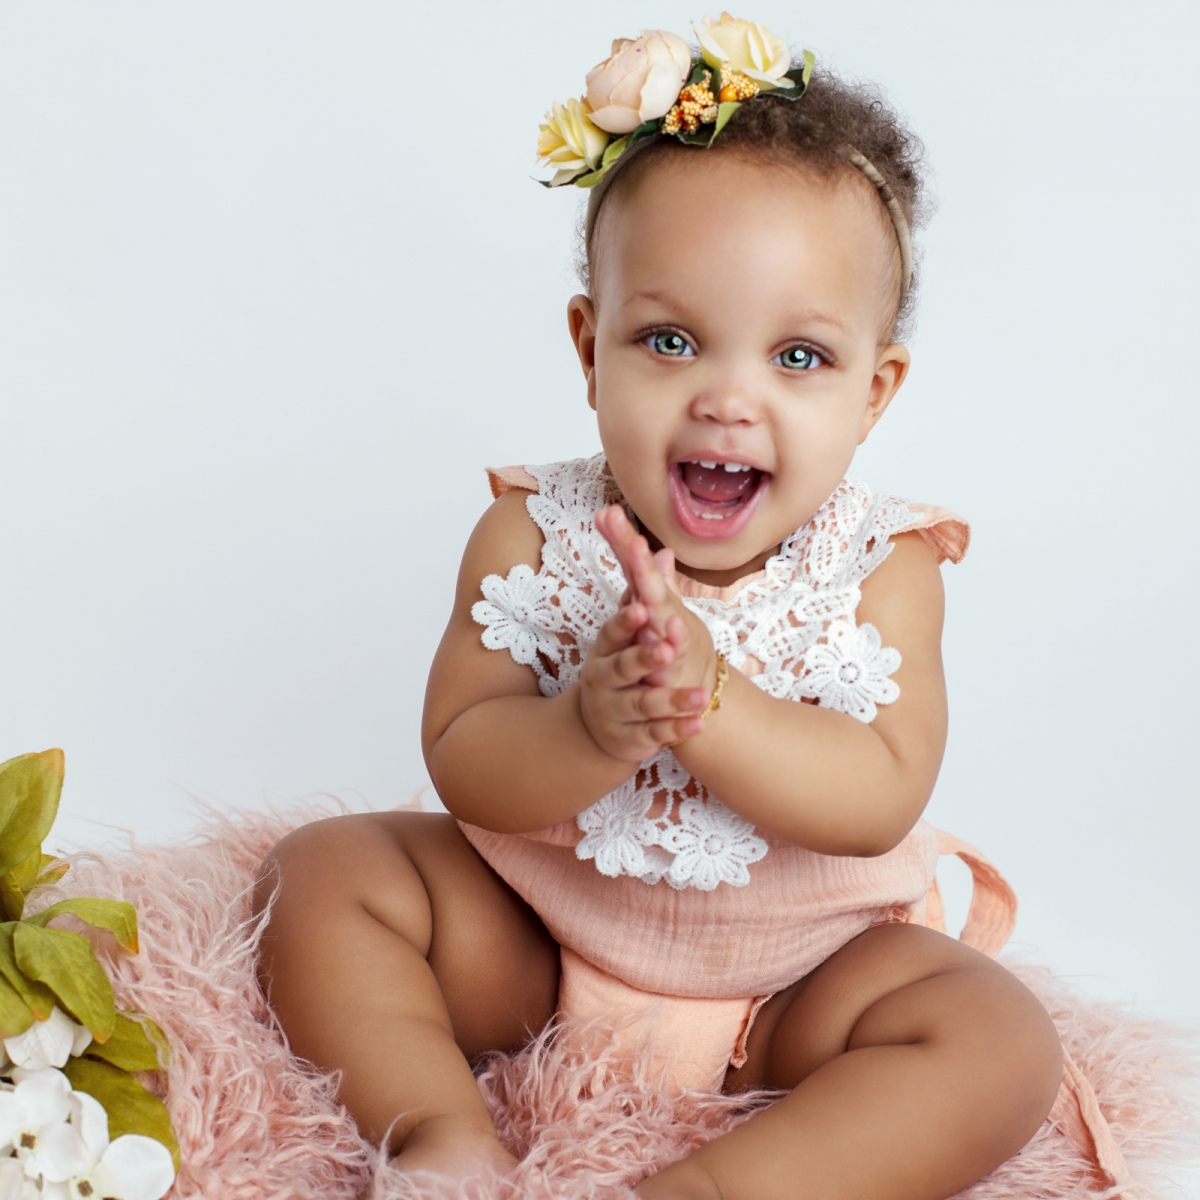 WHEN SHOULD I SCHEDULE MY INFANT PHOTOGRAPHY SESSION?